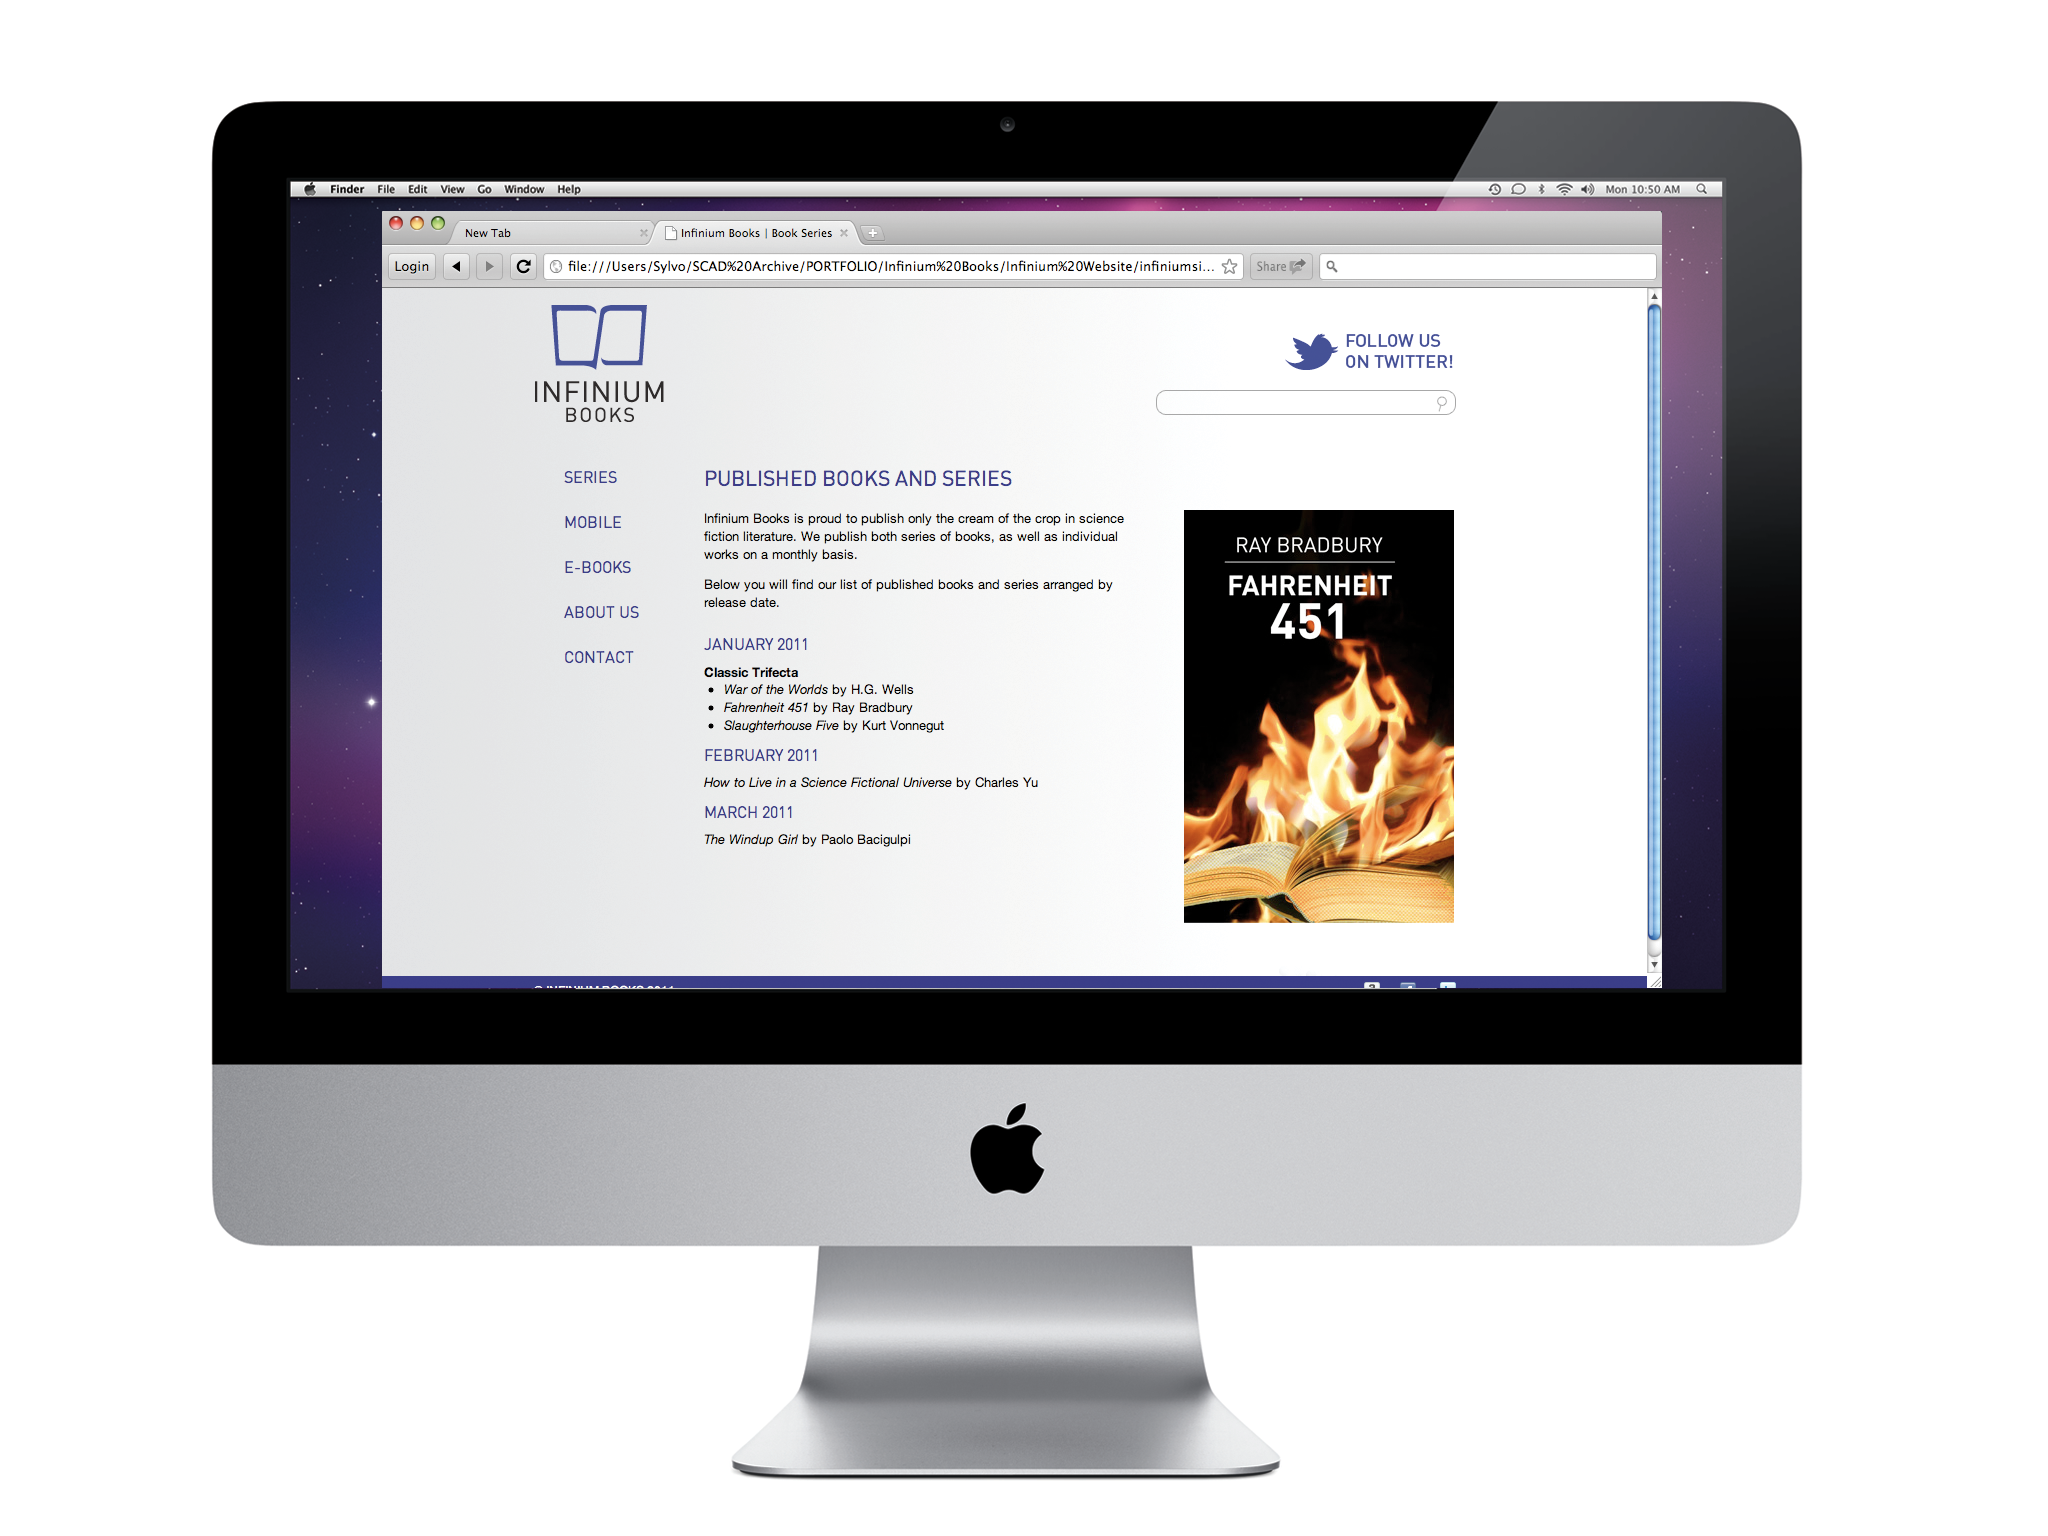 Original website design, 2011